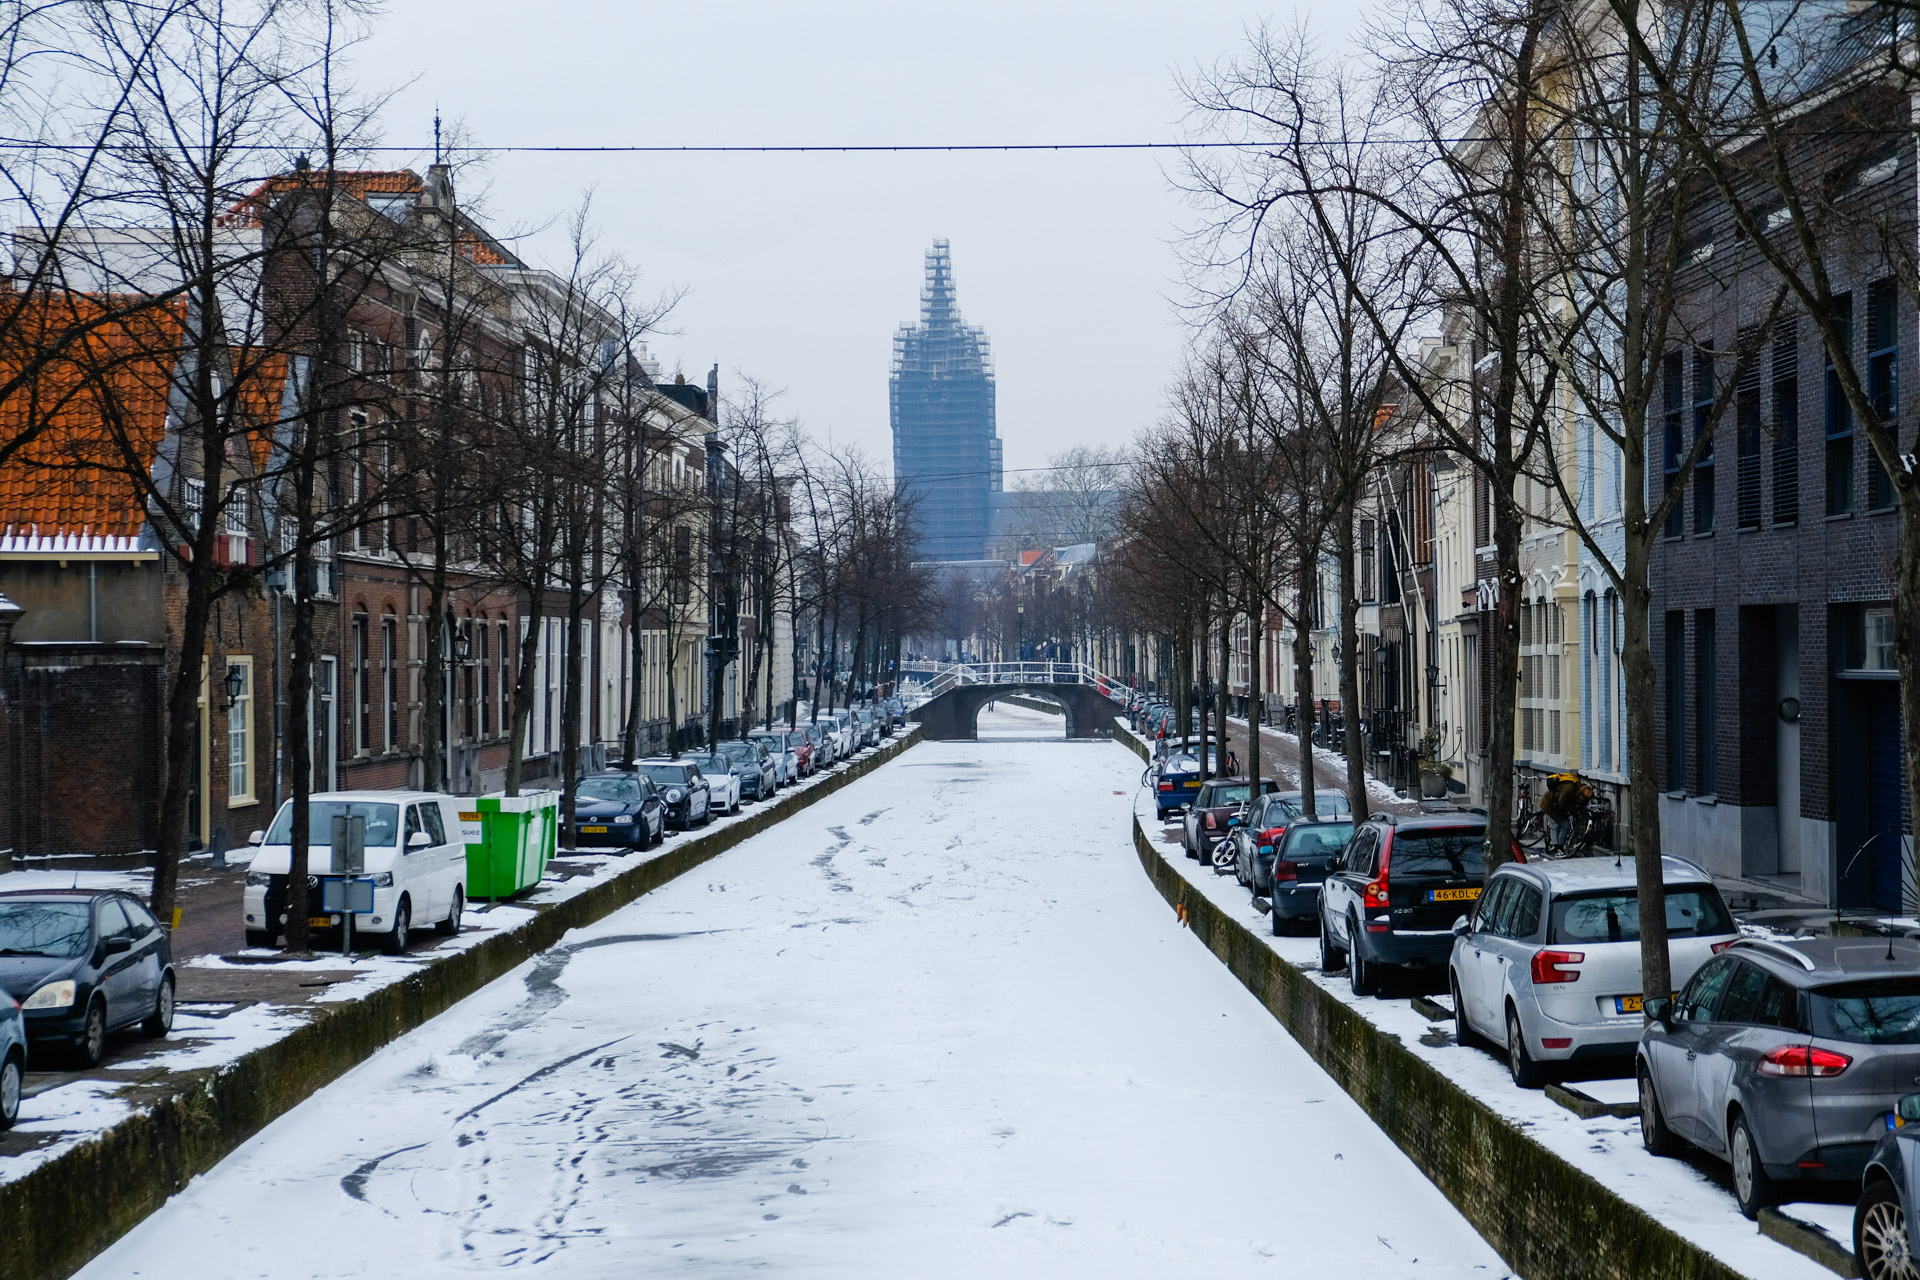 The frozen canal near the Oude Kerk